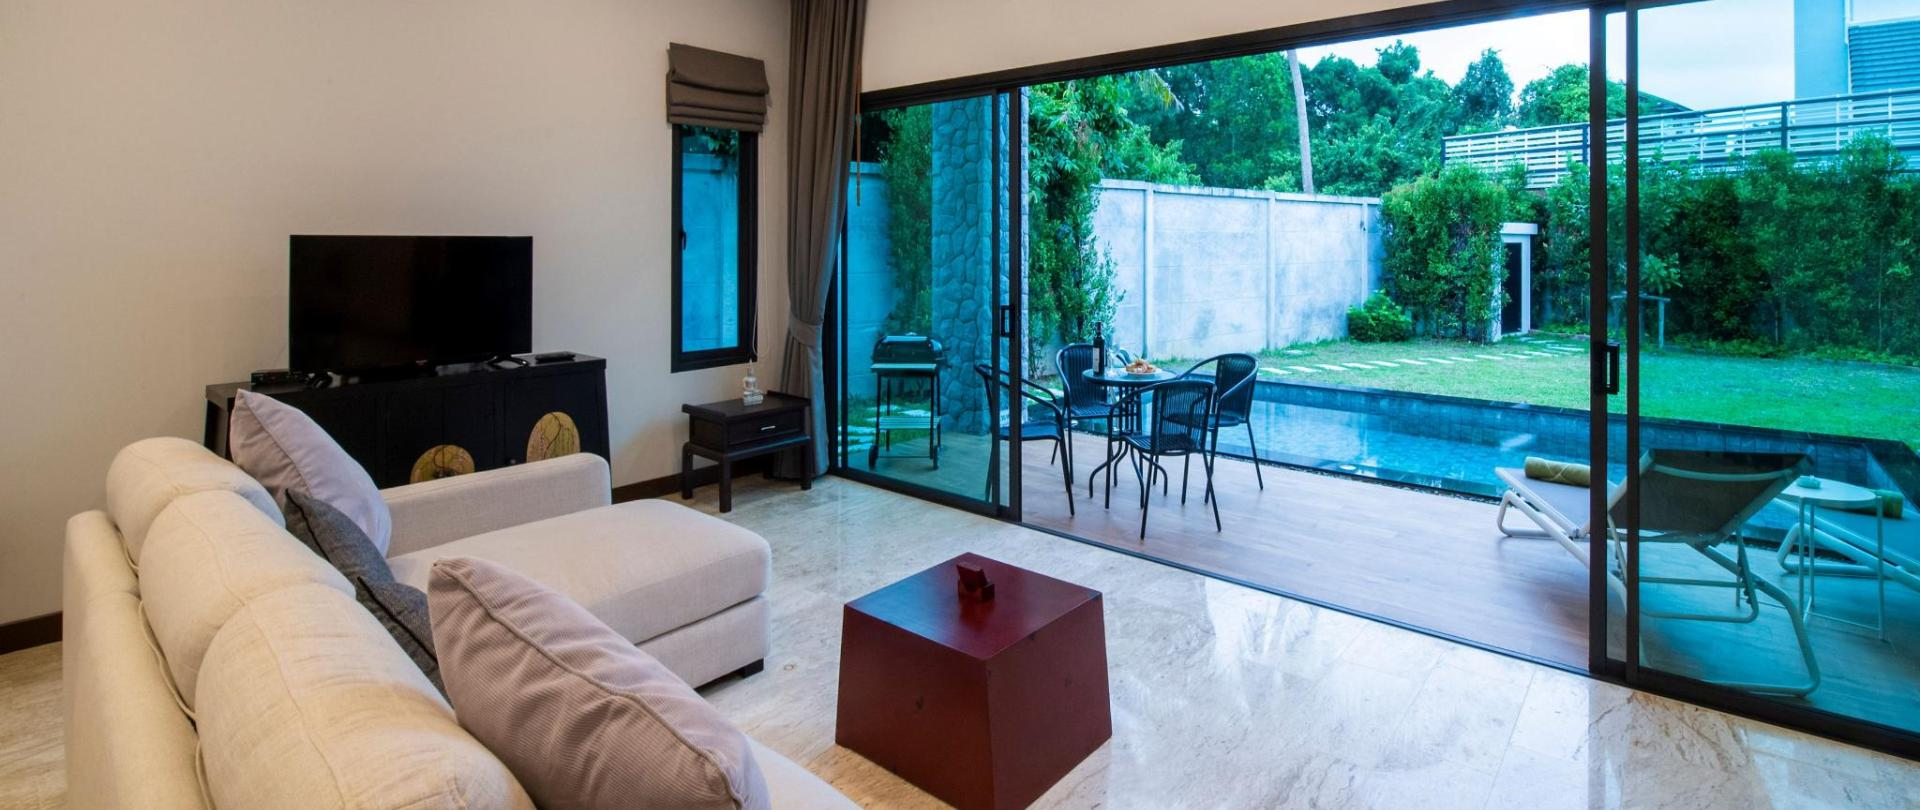 Acasia Pool Villas Chalong Phuket